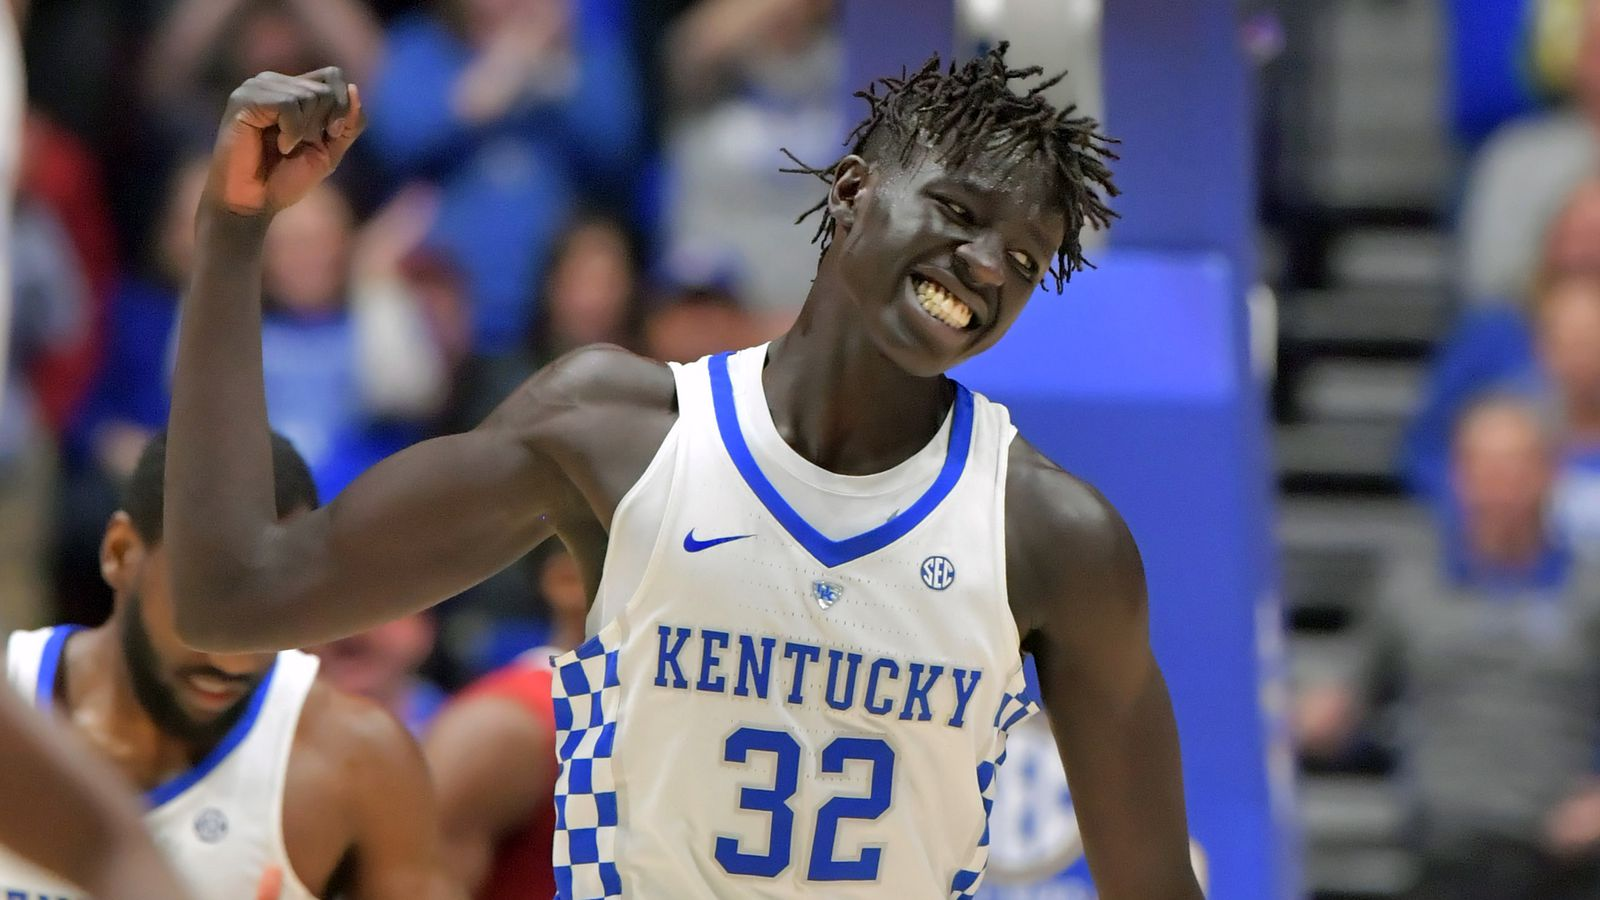 Uk Basketball Schedule: Kentucky Wildcats Basketball: 2018 SEC Matchups Revealed